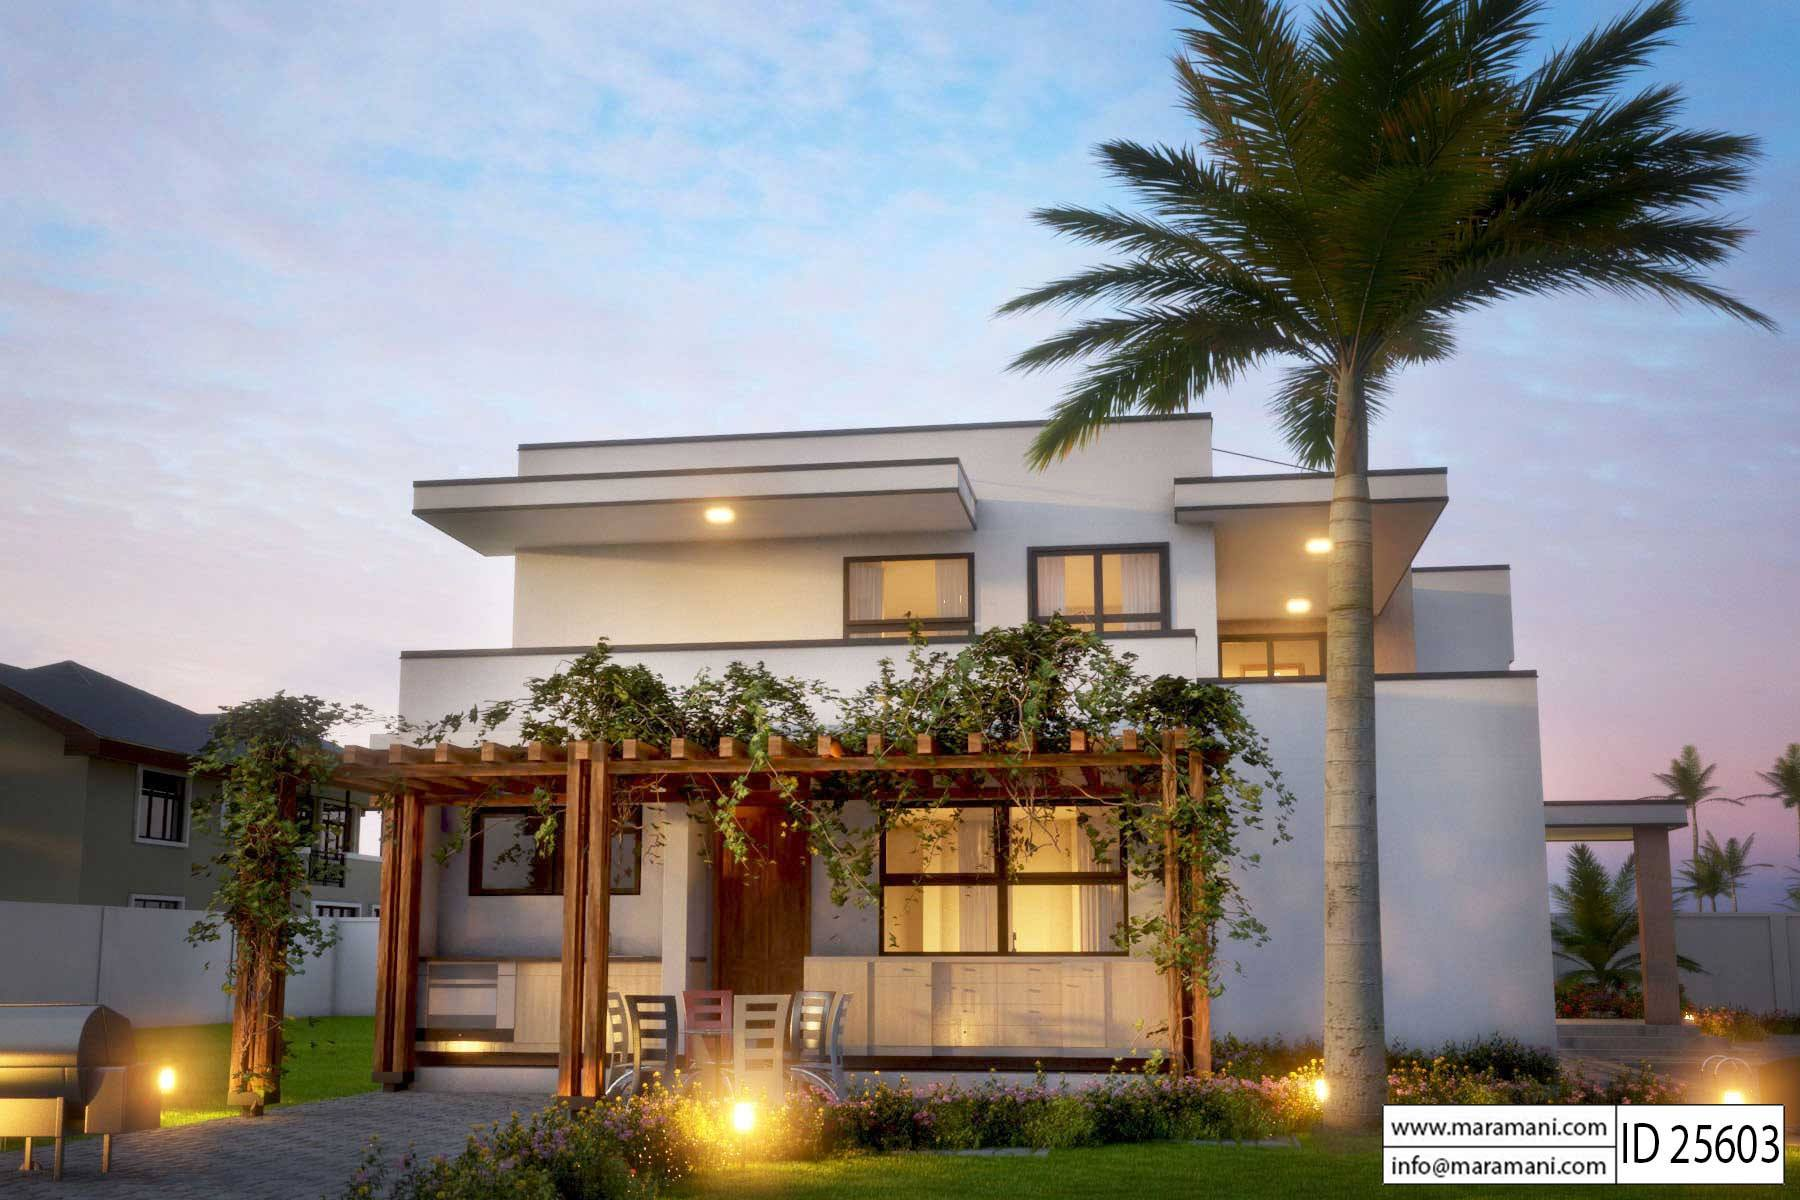 Rousing Bedroom House Design Id Plans By Maramani 5 Bedroom House Plans Under 2500 Square Feet 5 Bedroom House Plans Indian Style curbed 5 Bedroom House Plans